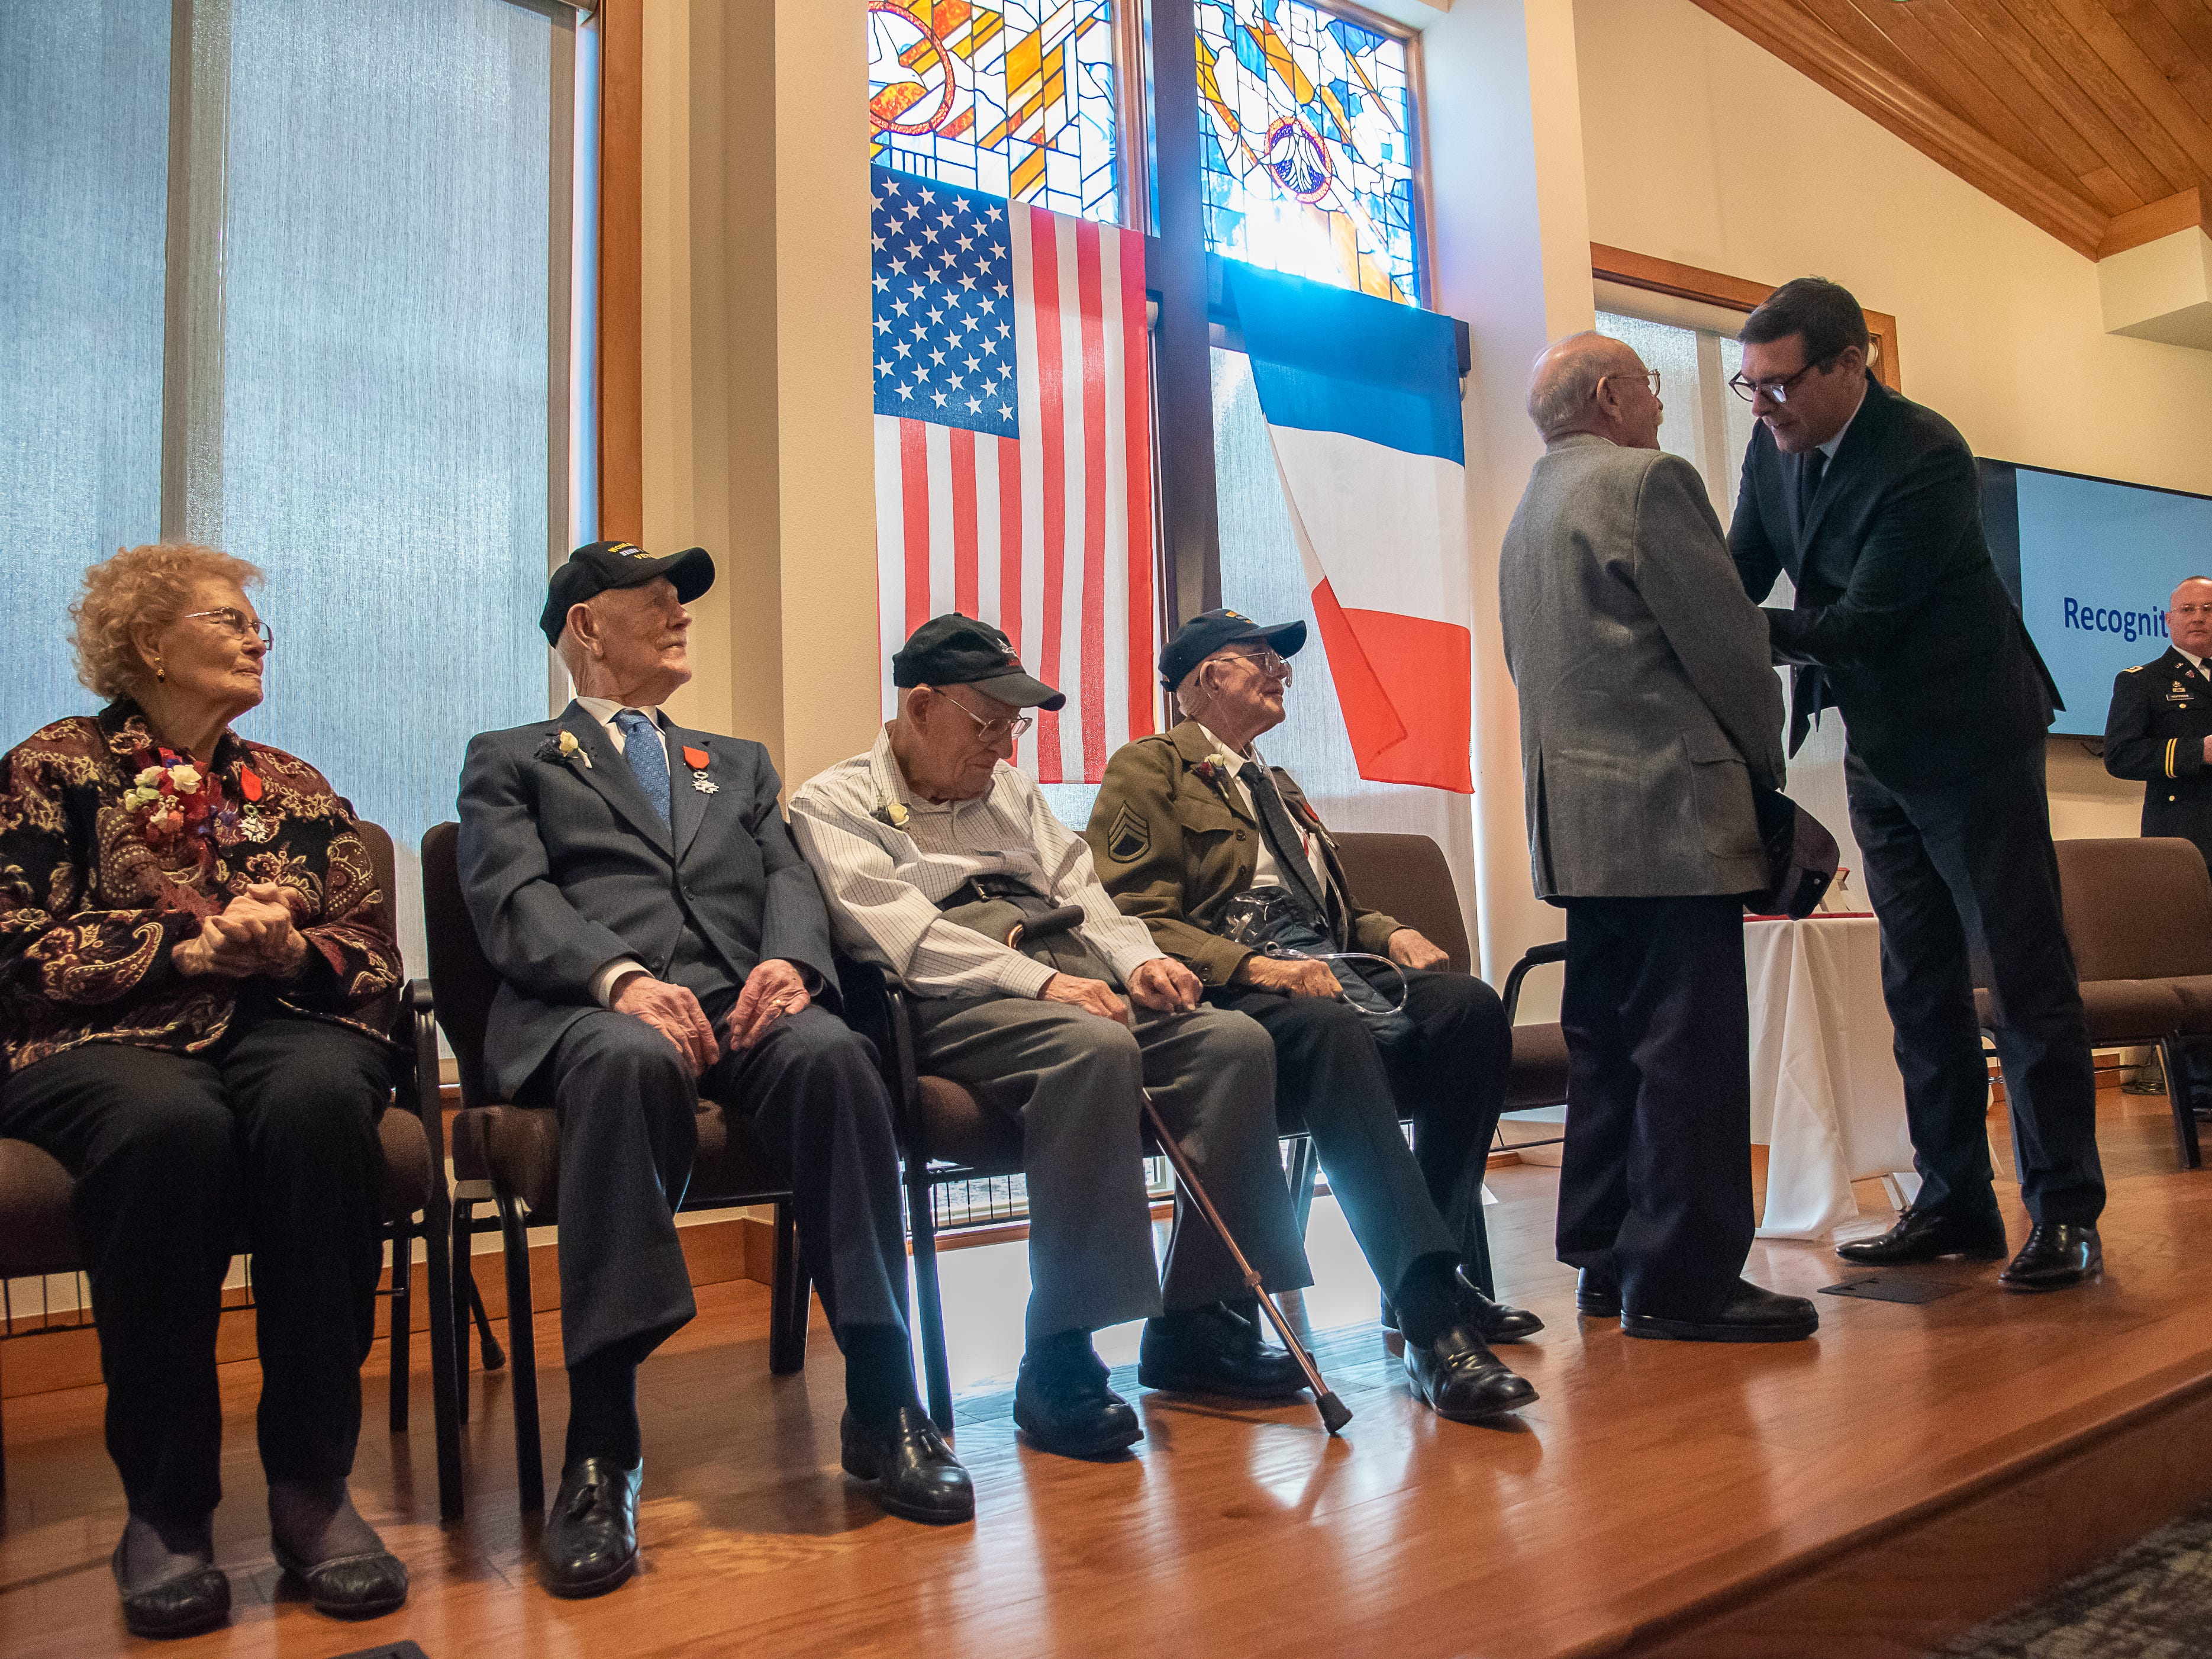 Fort Collins resident and World War II veteran SSG Harry Maroncelli stands to receive the French Legion of Honor Medal from Christophe Lemoine, Consulate of France, on Monday, February 4, 2019, during a ceremony at the Good Samaritan Water Valley Resort in Windsor.